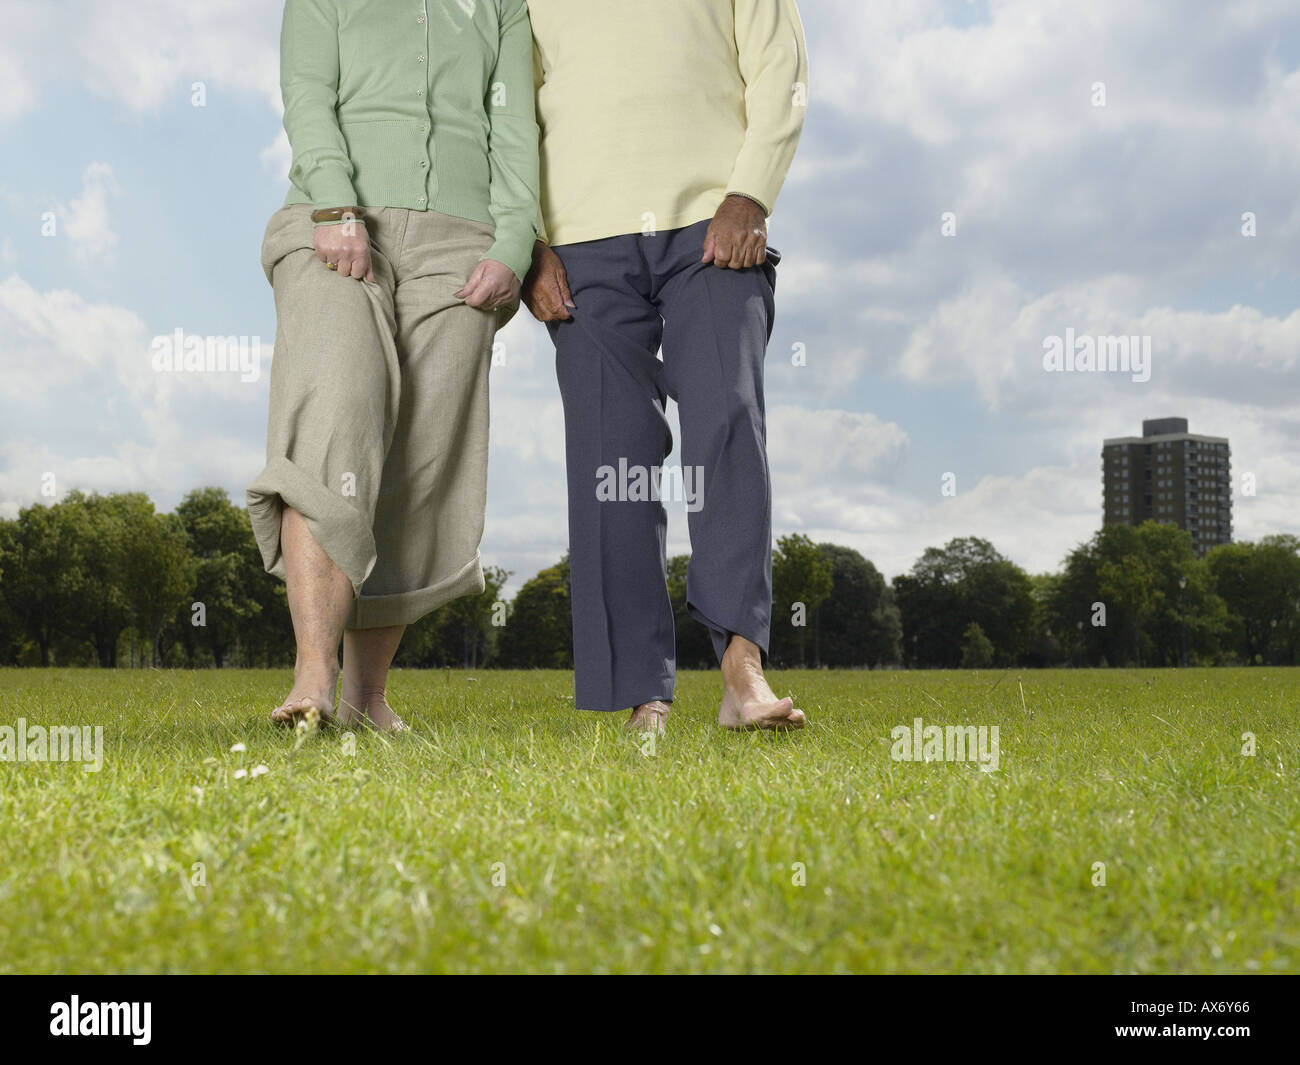 Elderly couple walking bare foot in the park - Stock Image